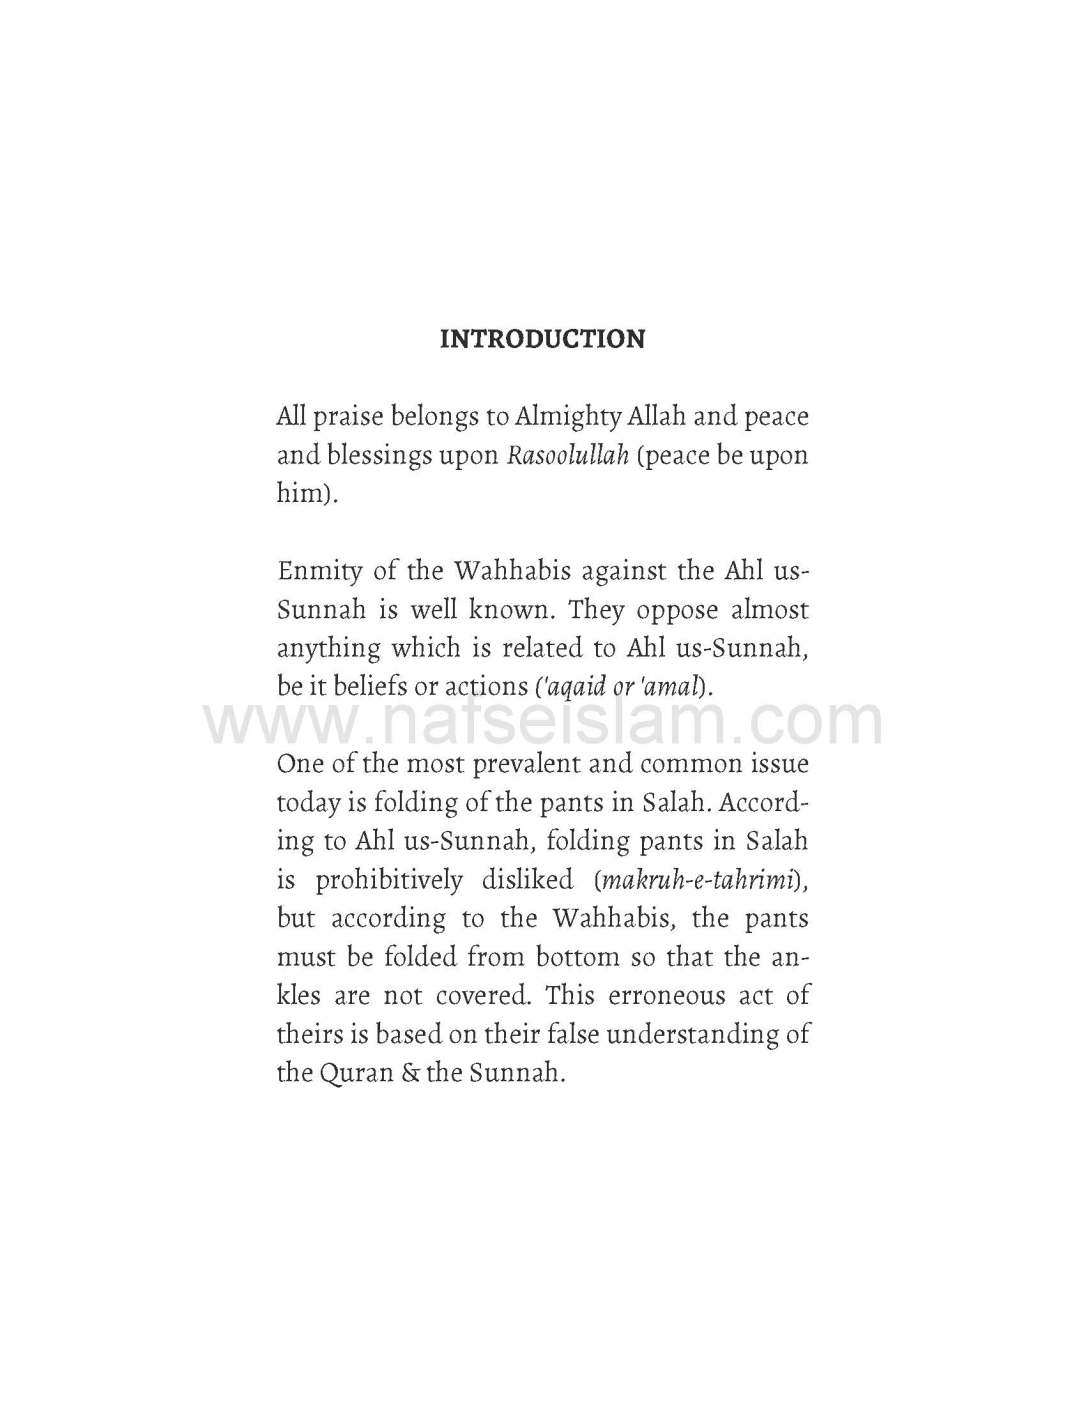 Islamic Ruling On Folding Pants In Salah_Page_02